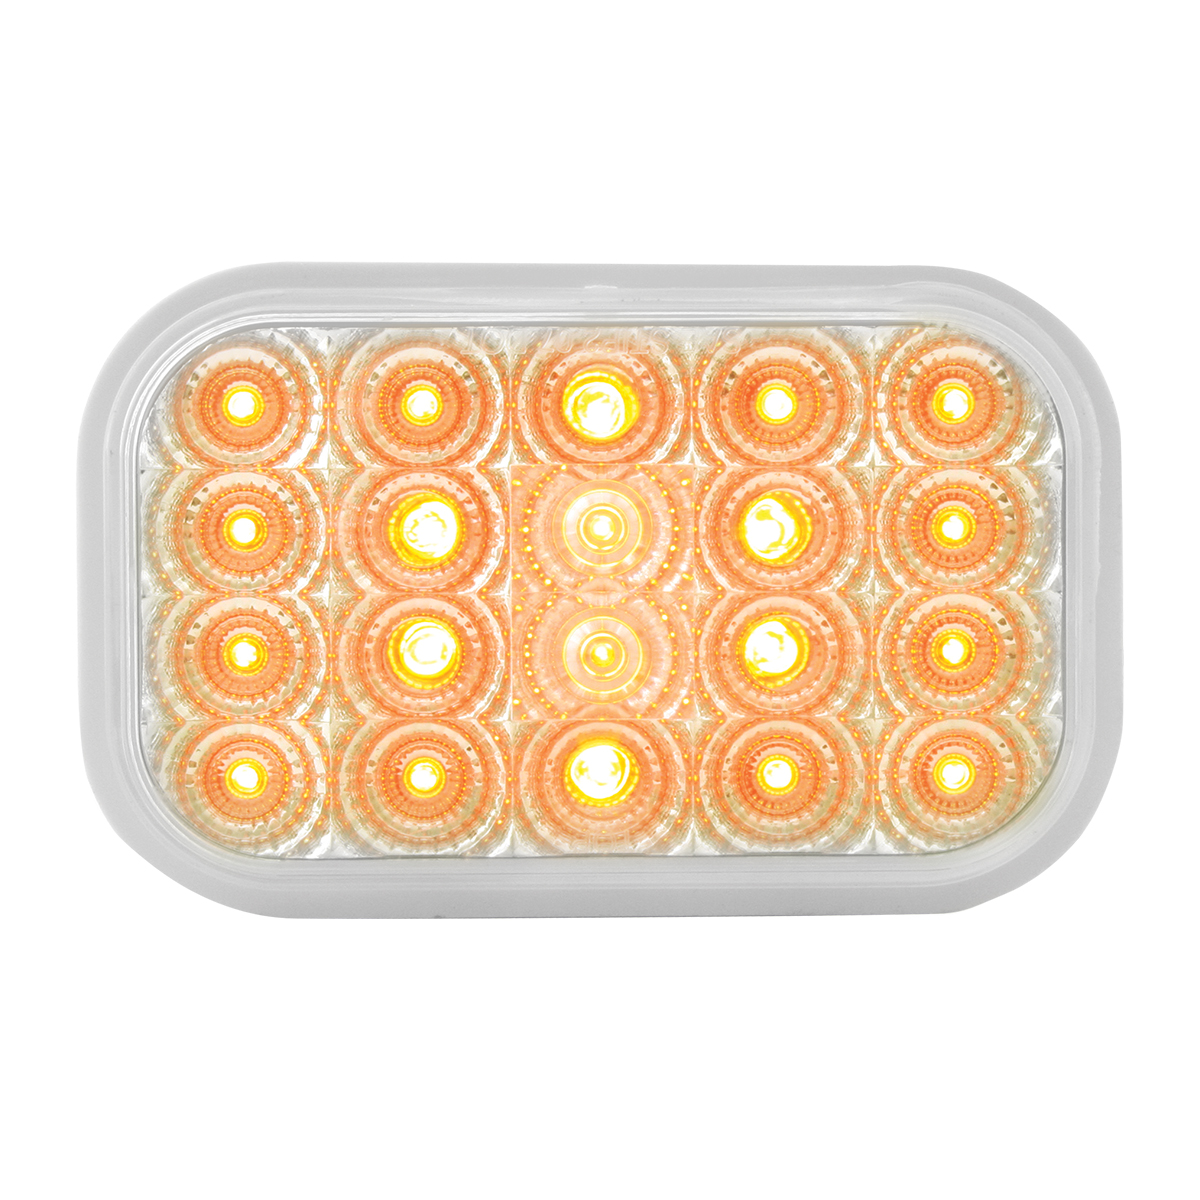 77011 Rectangular Spyder LED Light in Amber/Clear